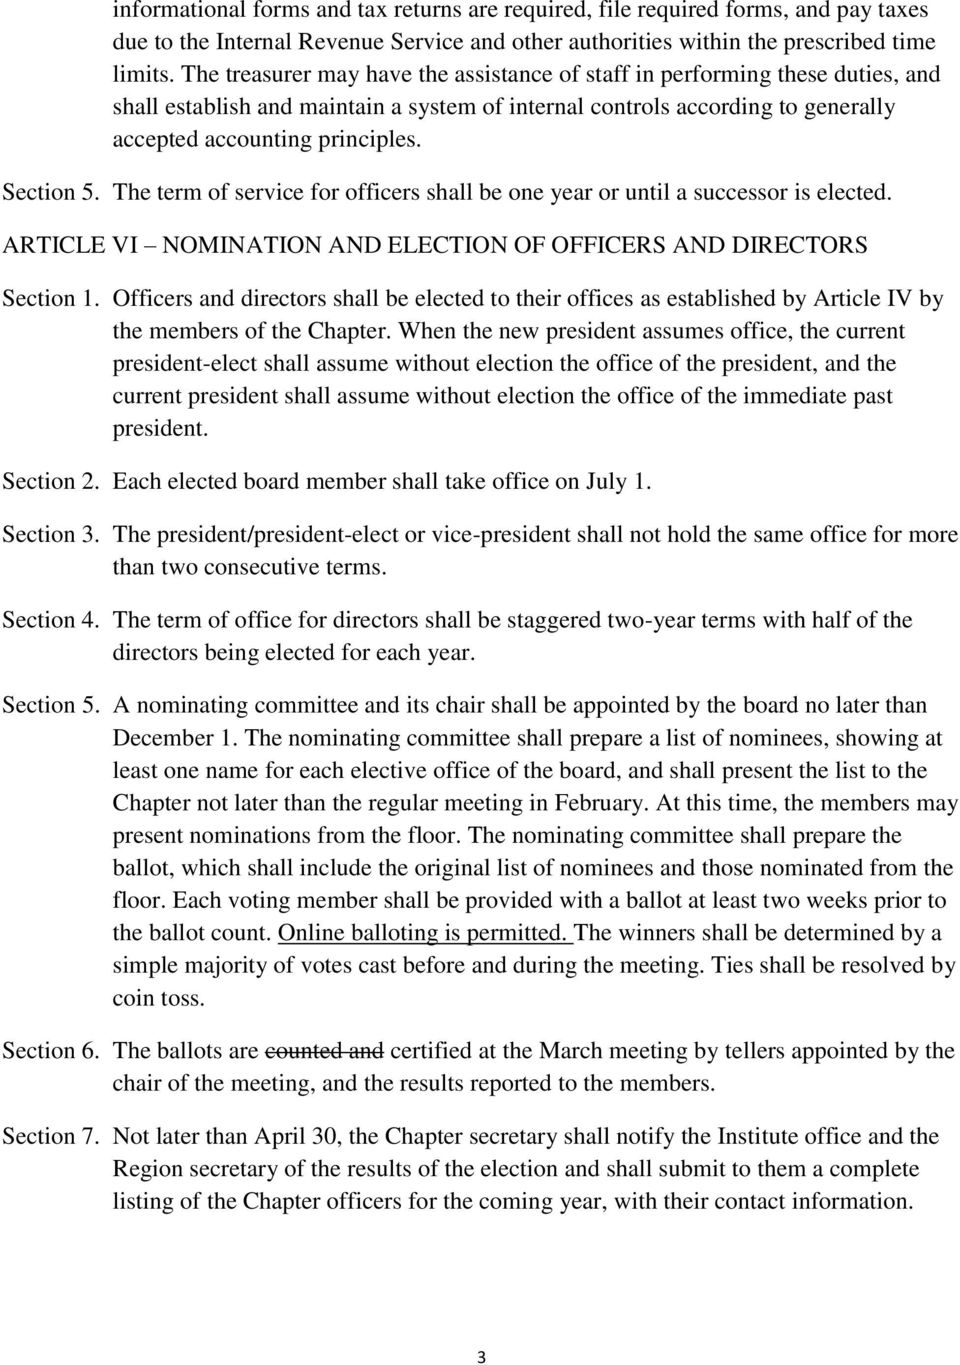 Section 5. The term of service for officers shall be one year or until a successor is elected. ARTICLE VI NOMINATION AND ELECTION OF OFFICERS AND DIRECTORS Section 1.